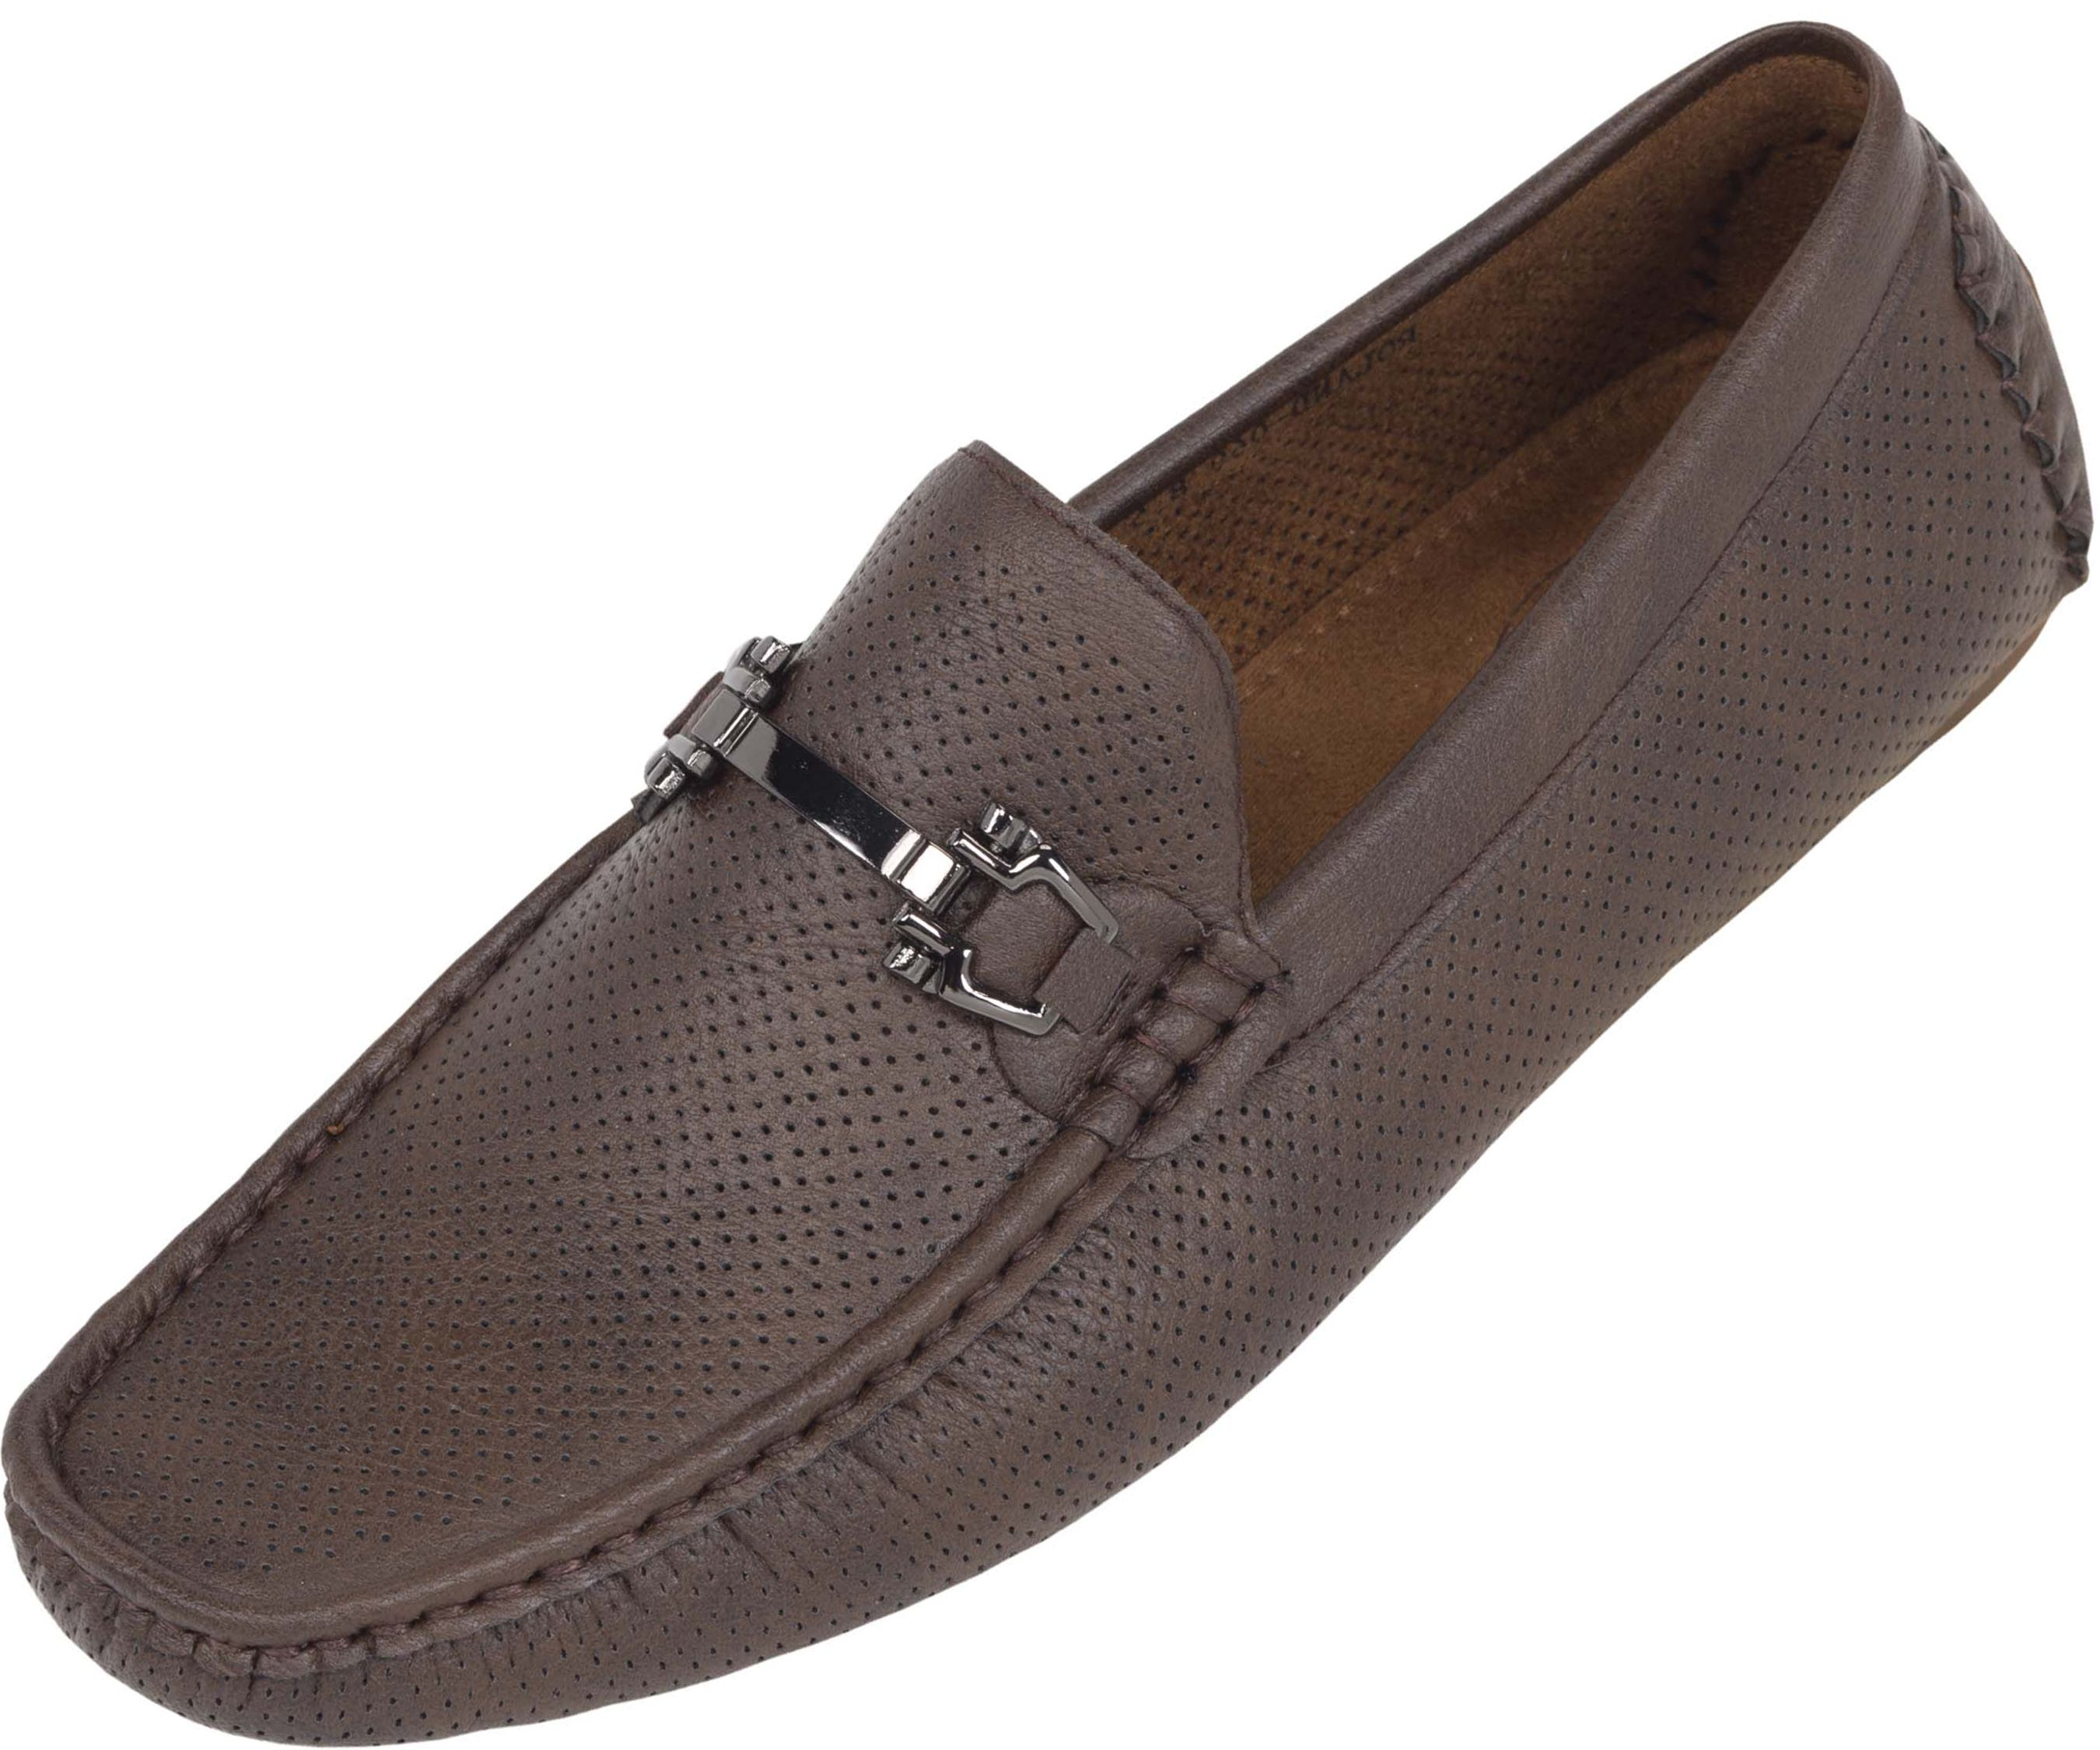 Mens Dress Moccasins Smooth Leather Perforated Breathable Driving Casual Loafers Shoes